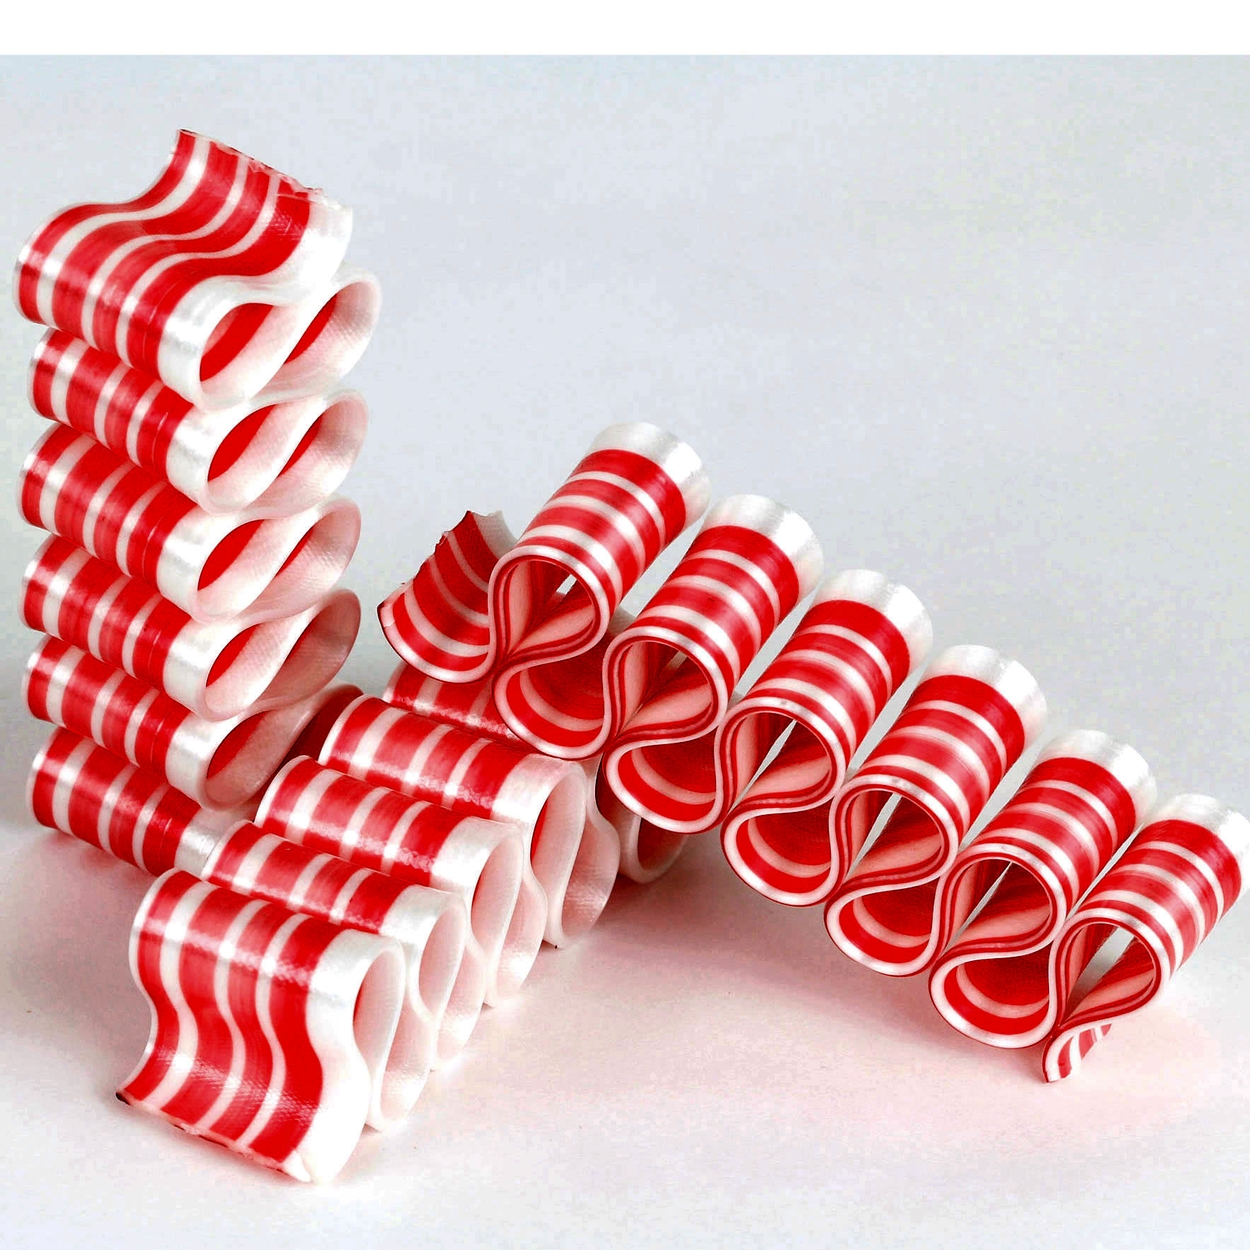 old fashioned red u0026 white thin candy ribbon 6ct box u2022 old fashioned candy ribbon u2022 unwrapped candy u2022 bulk candy u2022 oh nuts